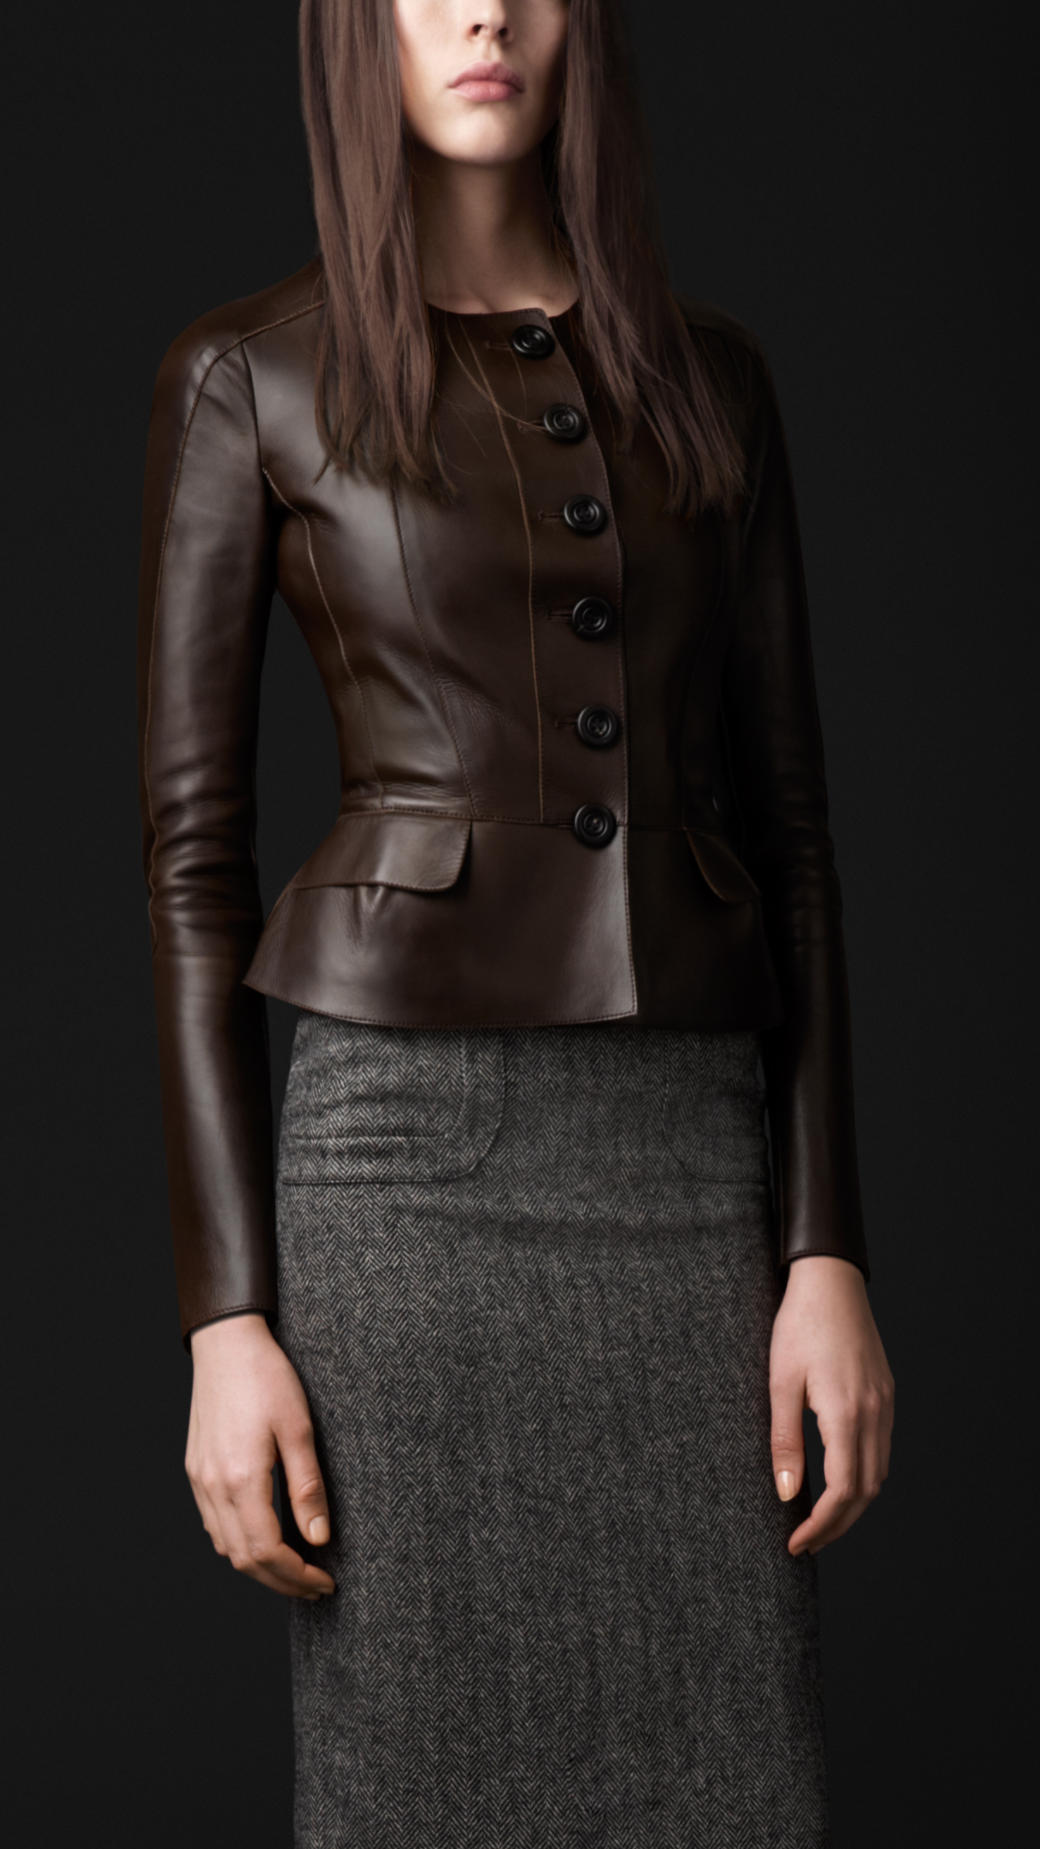 Burberry prorsum Peplum Detail Leather Jacket in Brown | Lyst